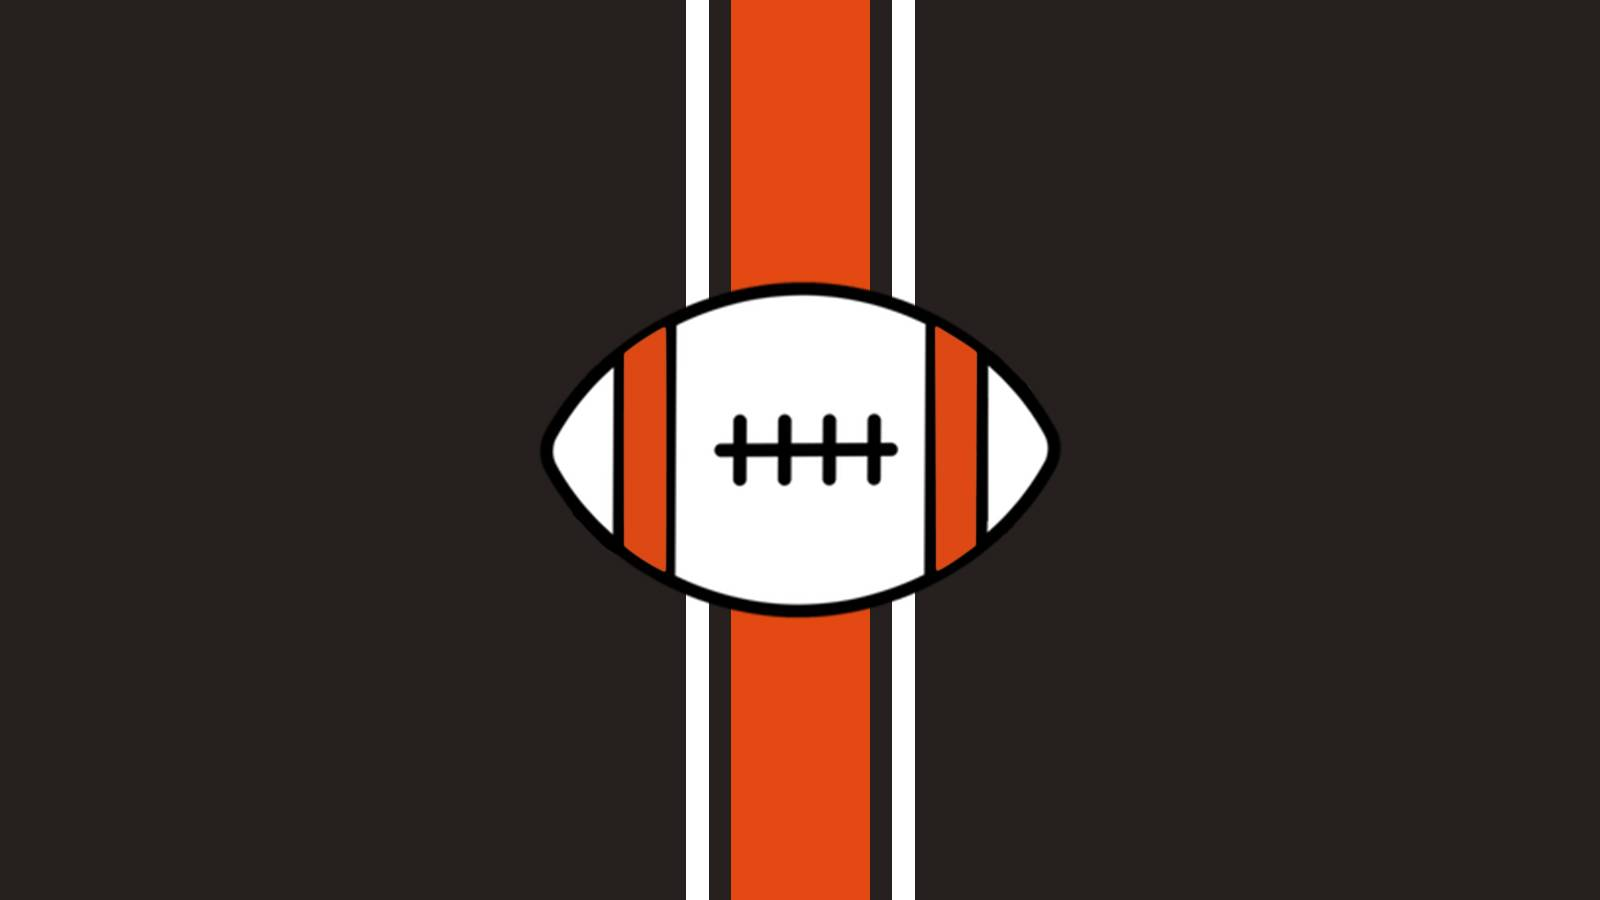 2020 Cleveland Browns Season Tickets (Includes Tickets To All Regular Season Home Games)